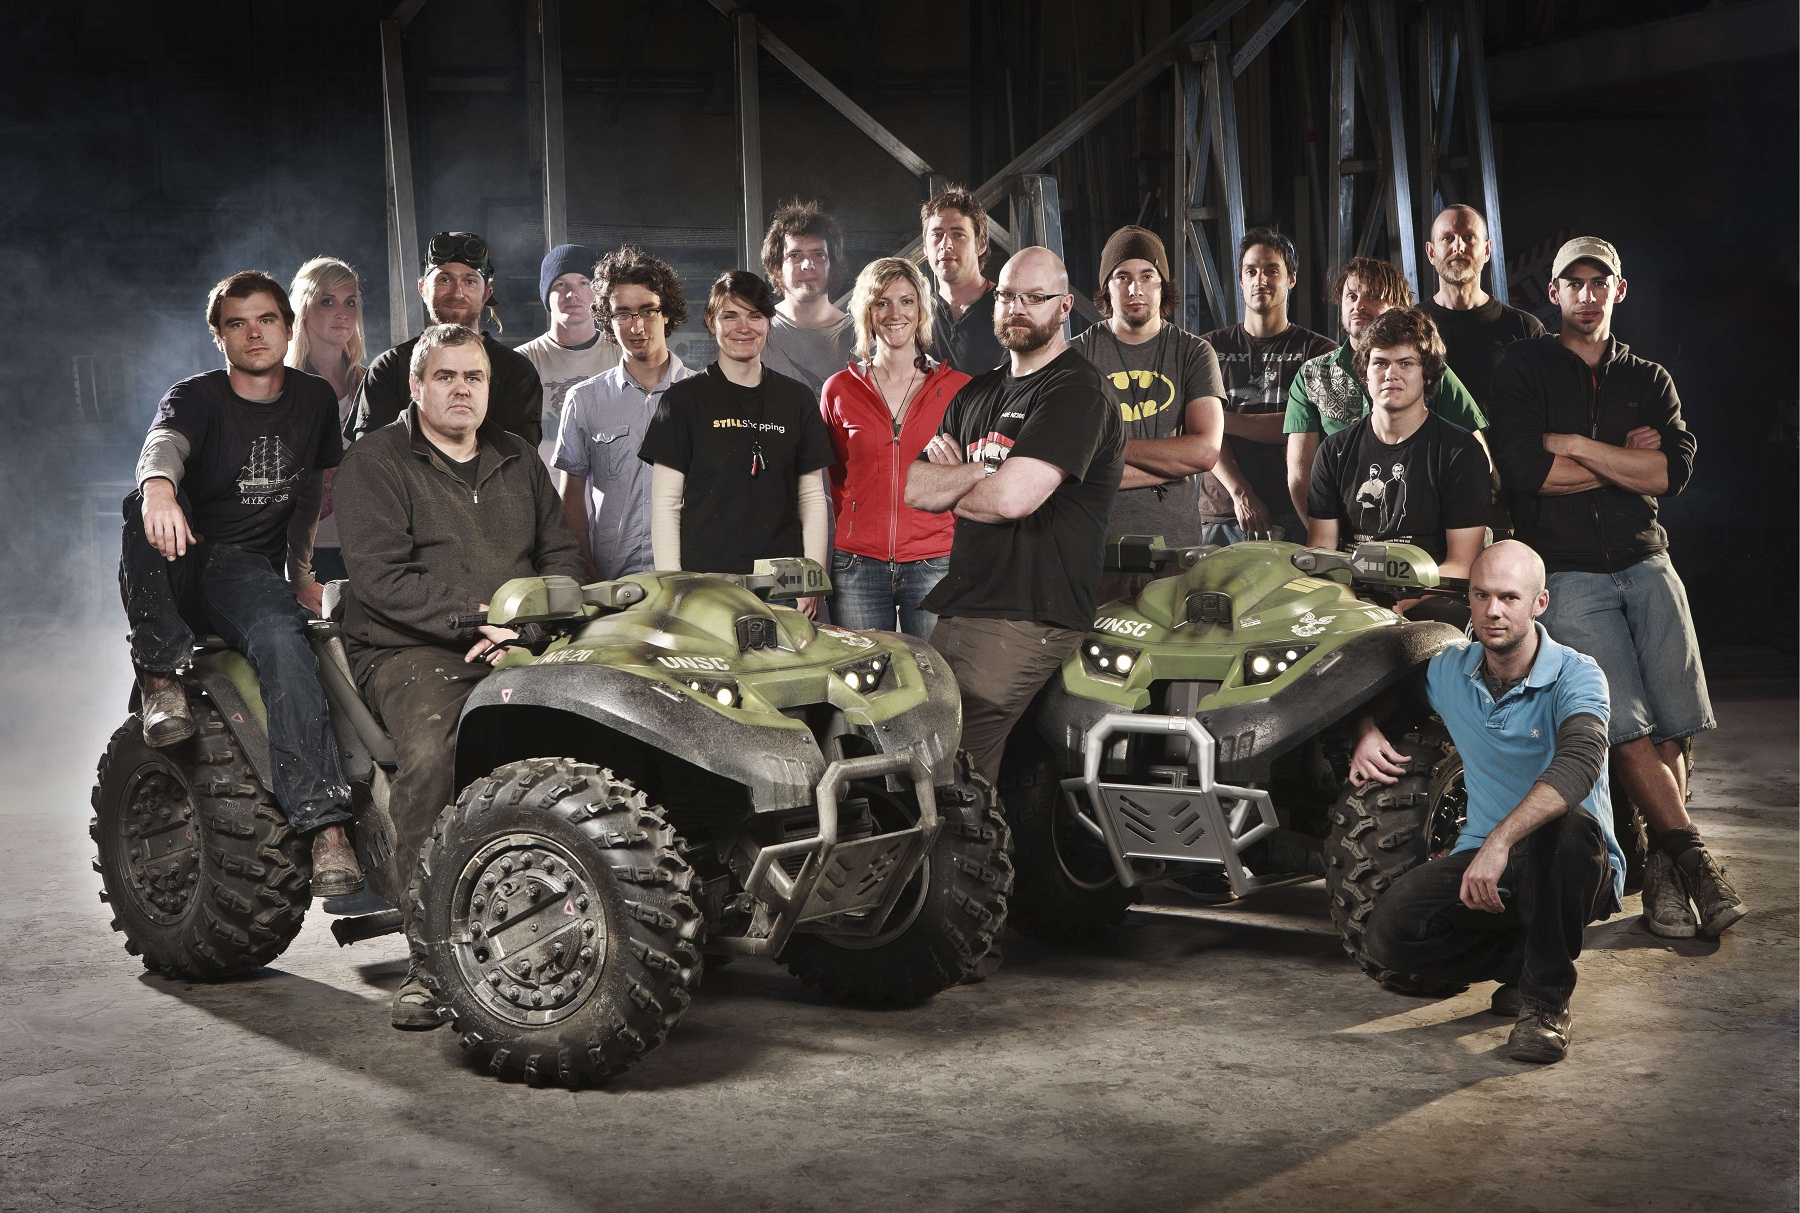 Delcam offers Weta Workshop fantastic software for fantastic projects